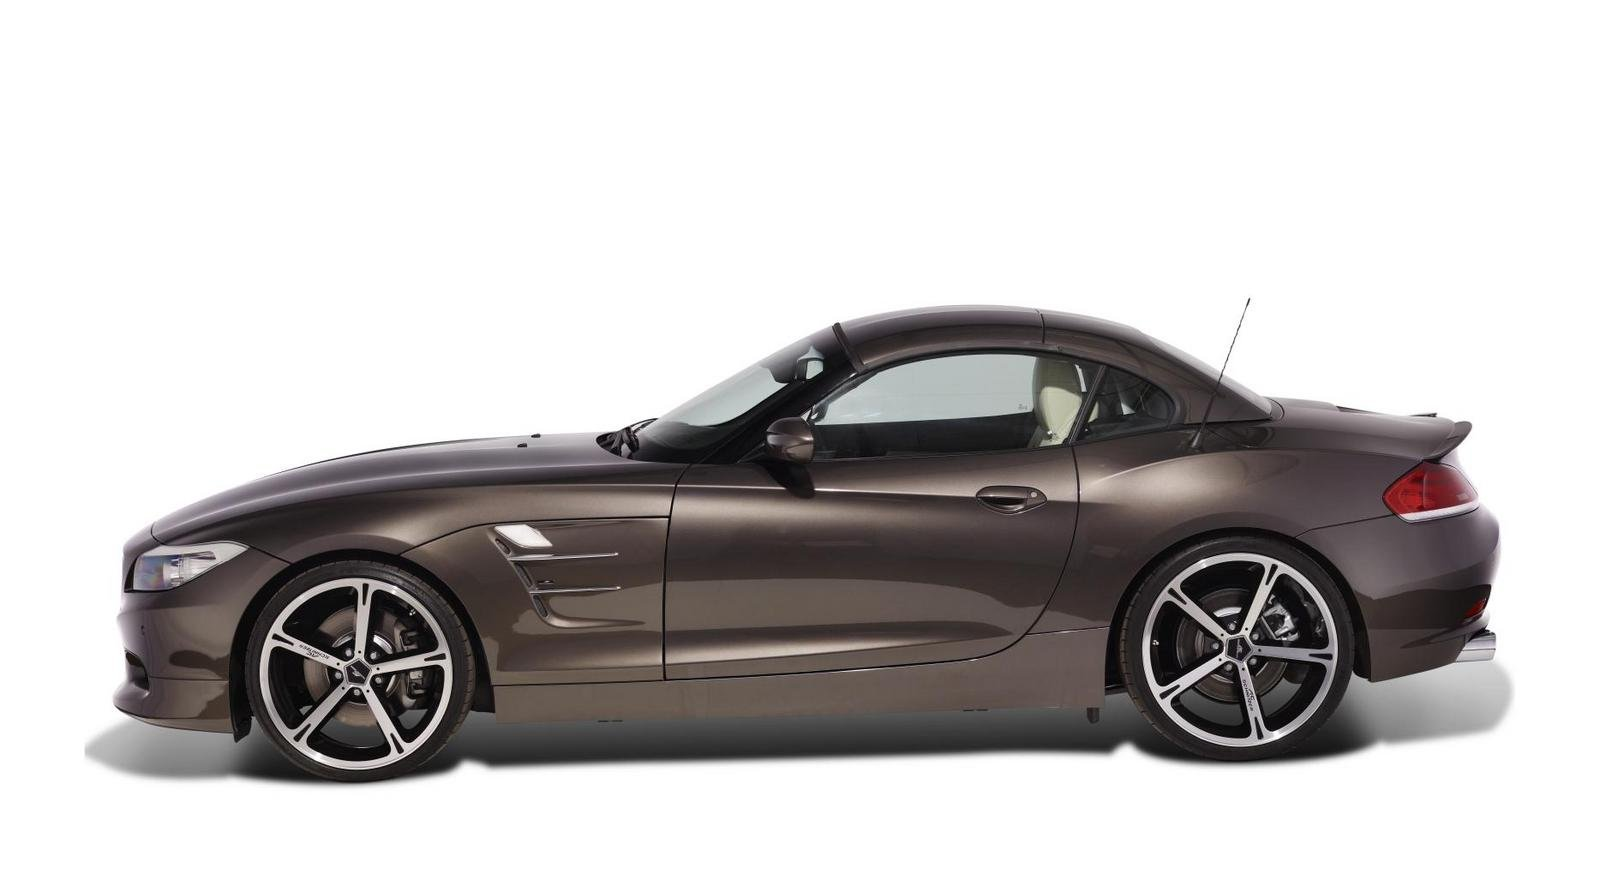 Bmw Z4 By Ac Schnitzer Wallpaper Image